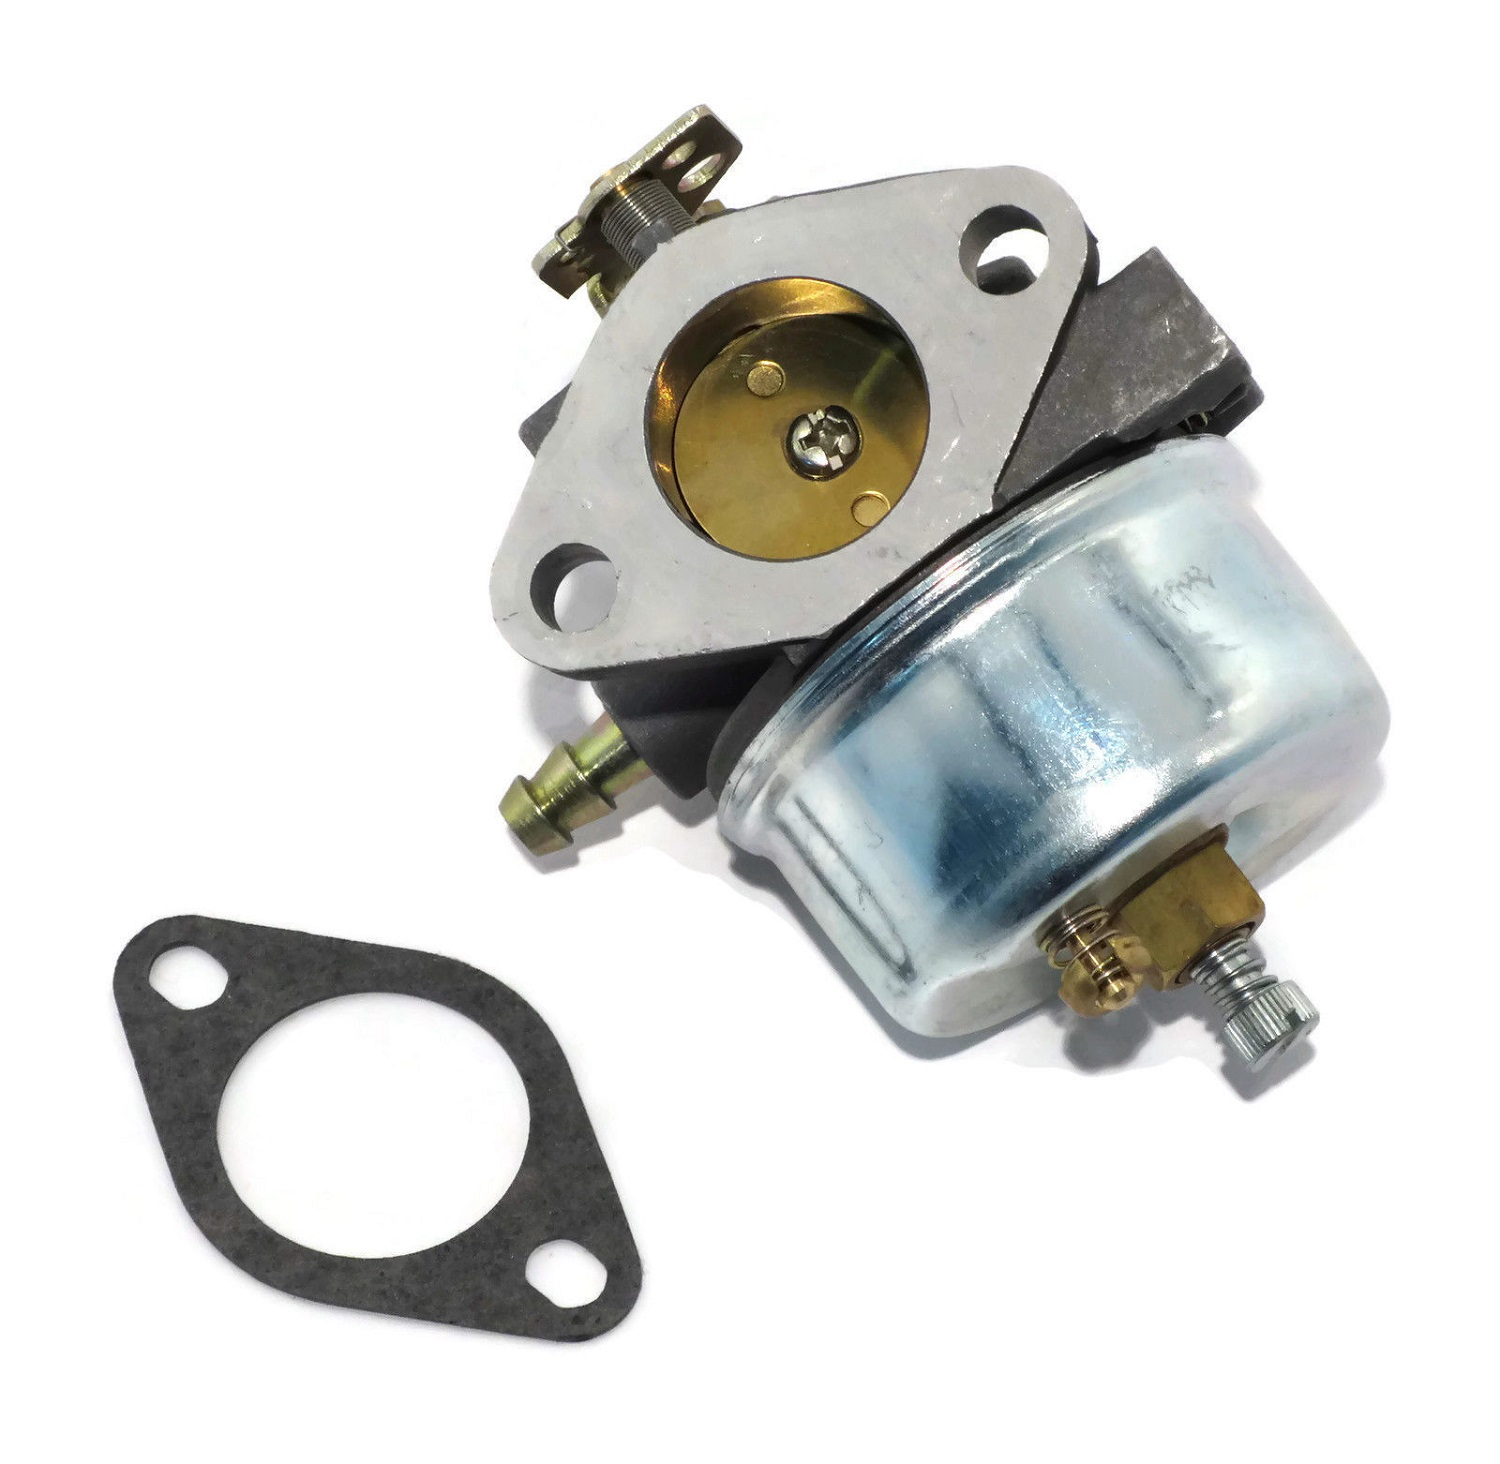 CARBURETOR FOR TECUMSEH HMSK90 HMSK100 REPLACES 632370A 632370